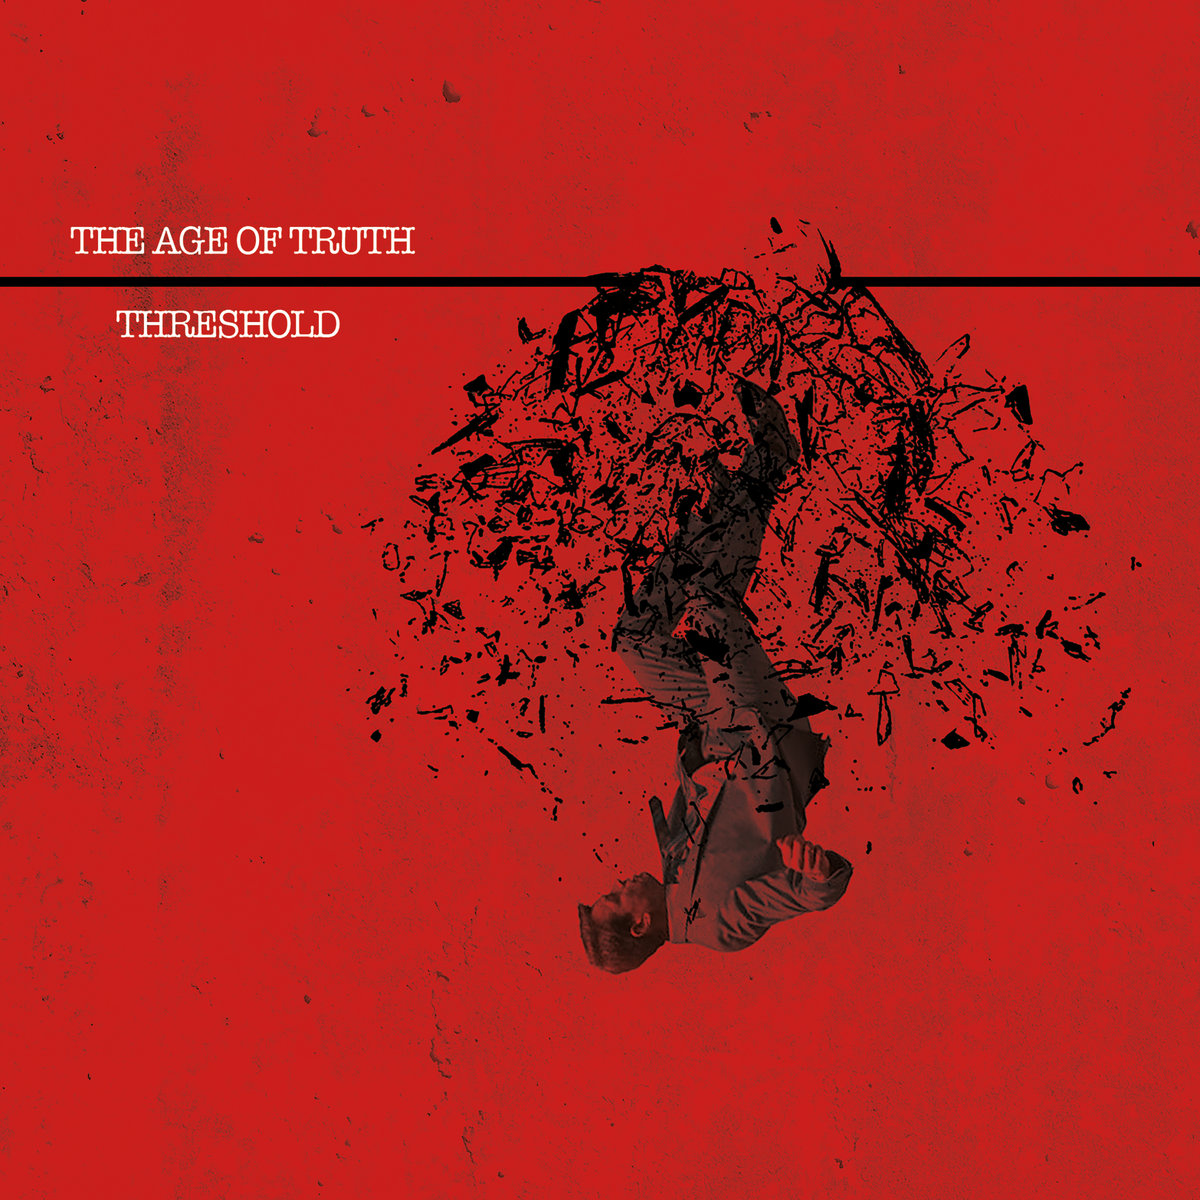 Album Review: THE AGE OF TRUTH- 'Threshold'